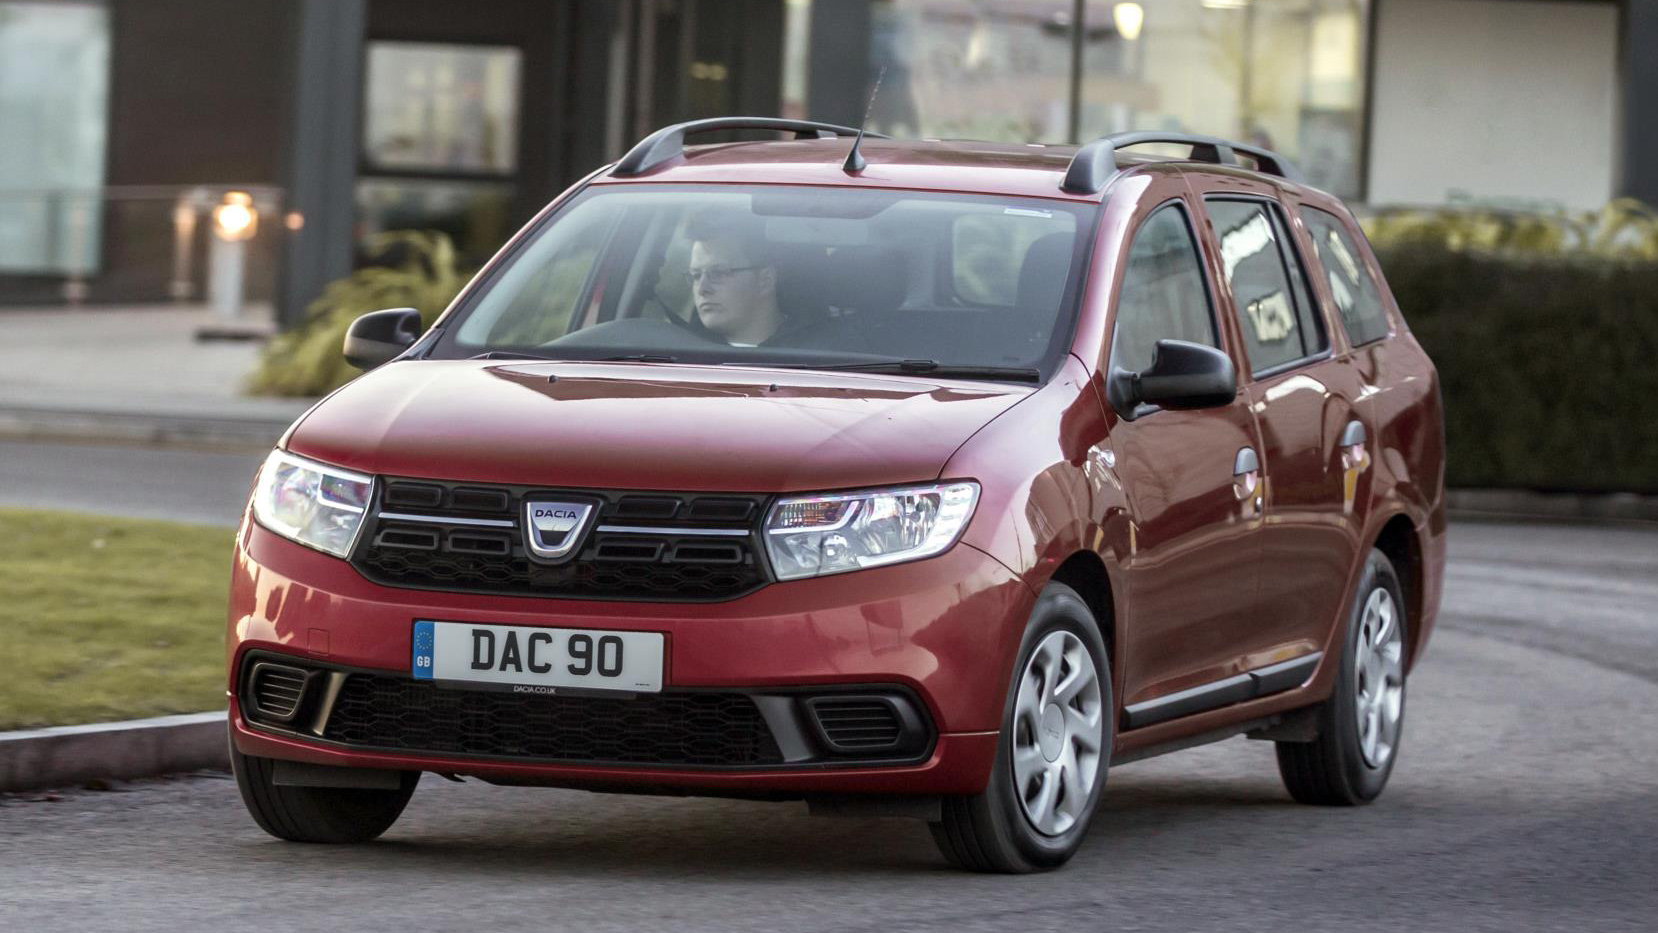 used dacia logan mcv cars for sale on auto trader uk. Black Bedroom Furniture Sets. Home Design Ideas